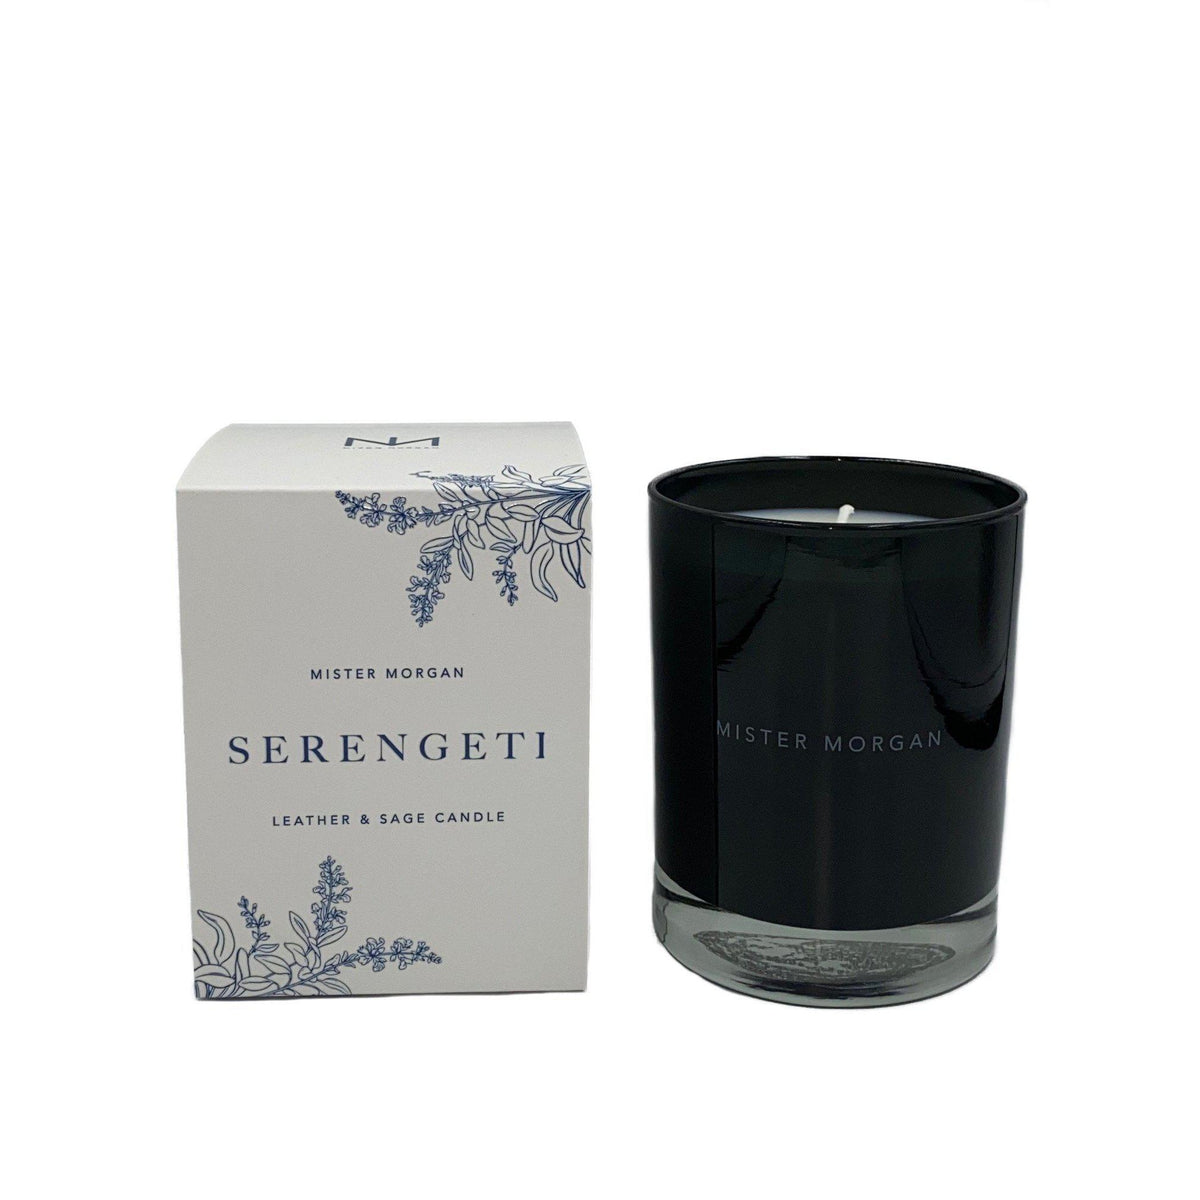 Niven Morgan Mister Morgan Serengeti Vintage Leather Candle-Niven Morgan-Oak Manor Fragrances